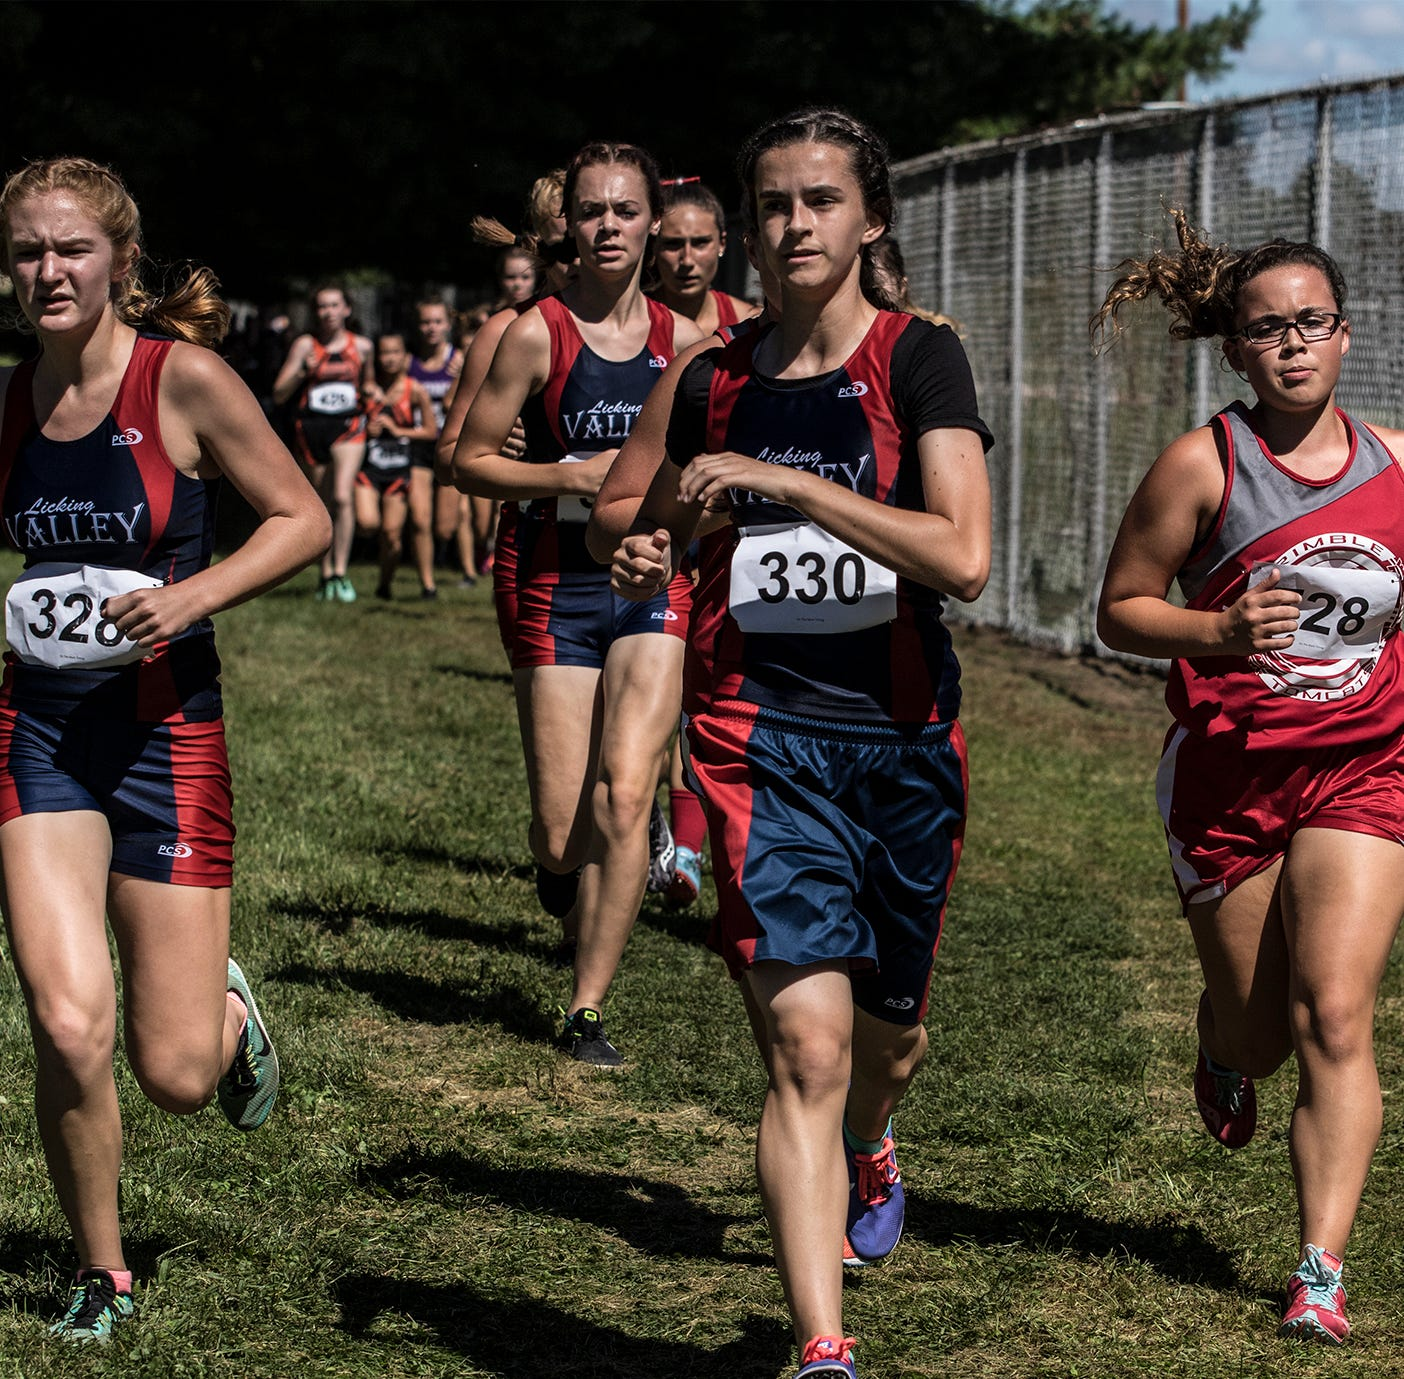 Licking Valley girls win title; Lakewood boys finish strong at Newark